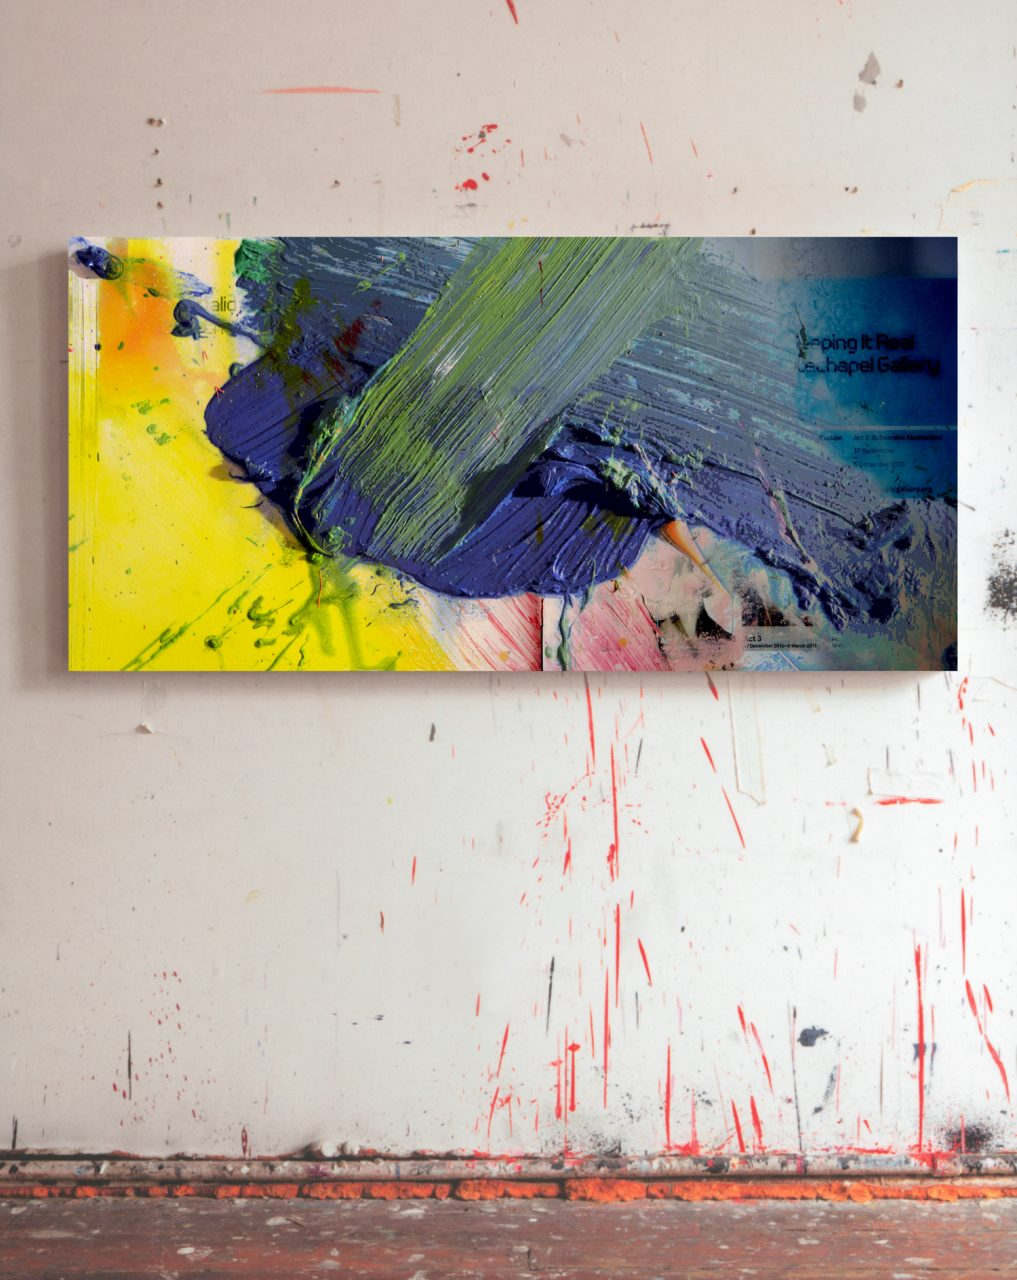 Studio Berlin — Painting 90 x 200 cm